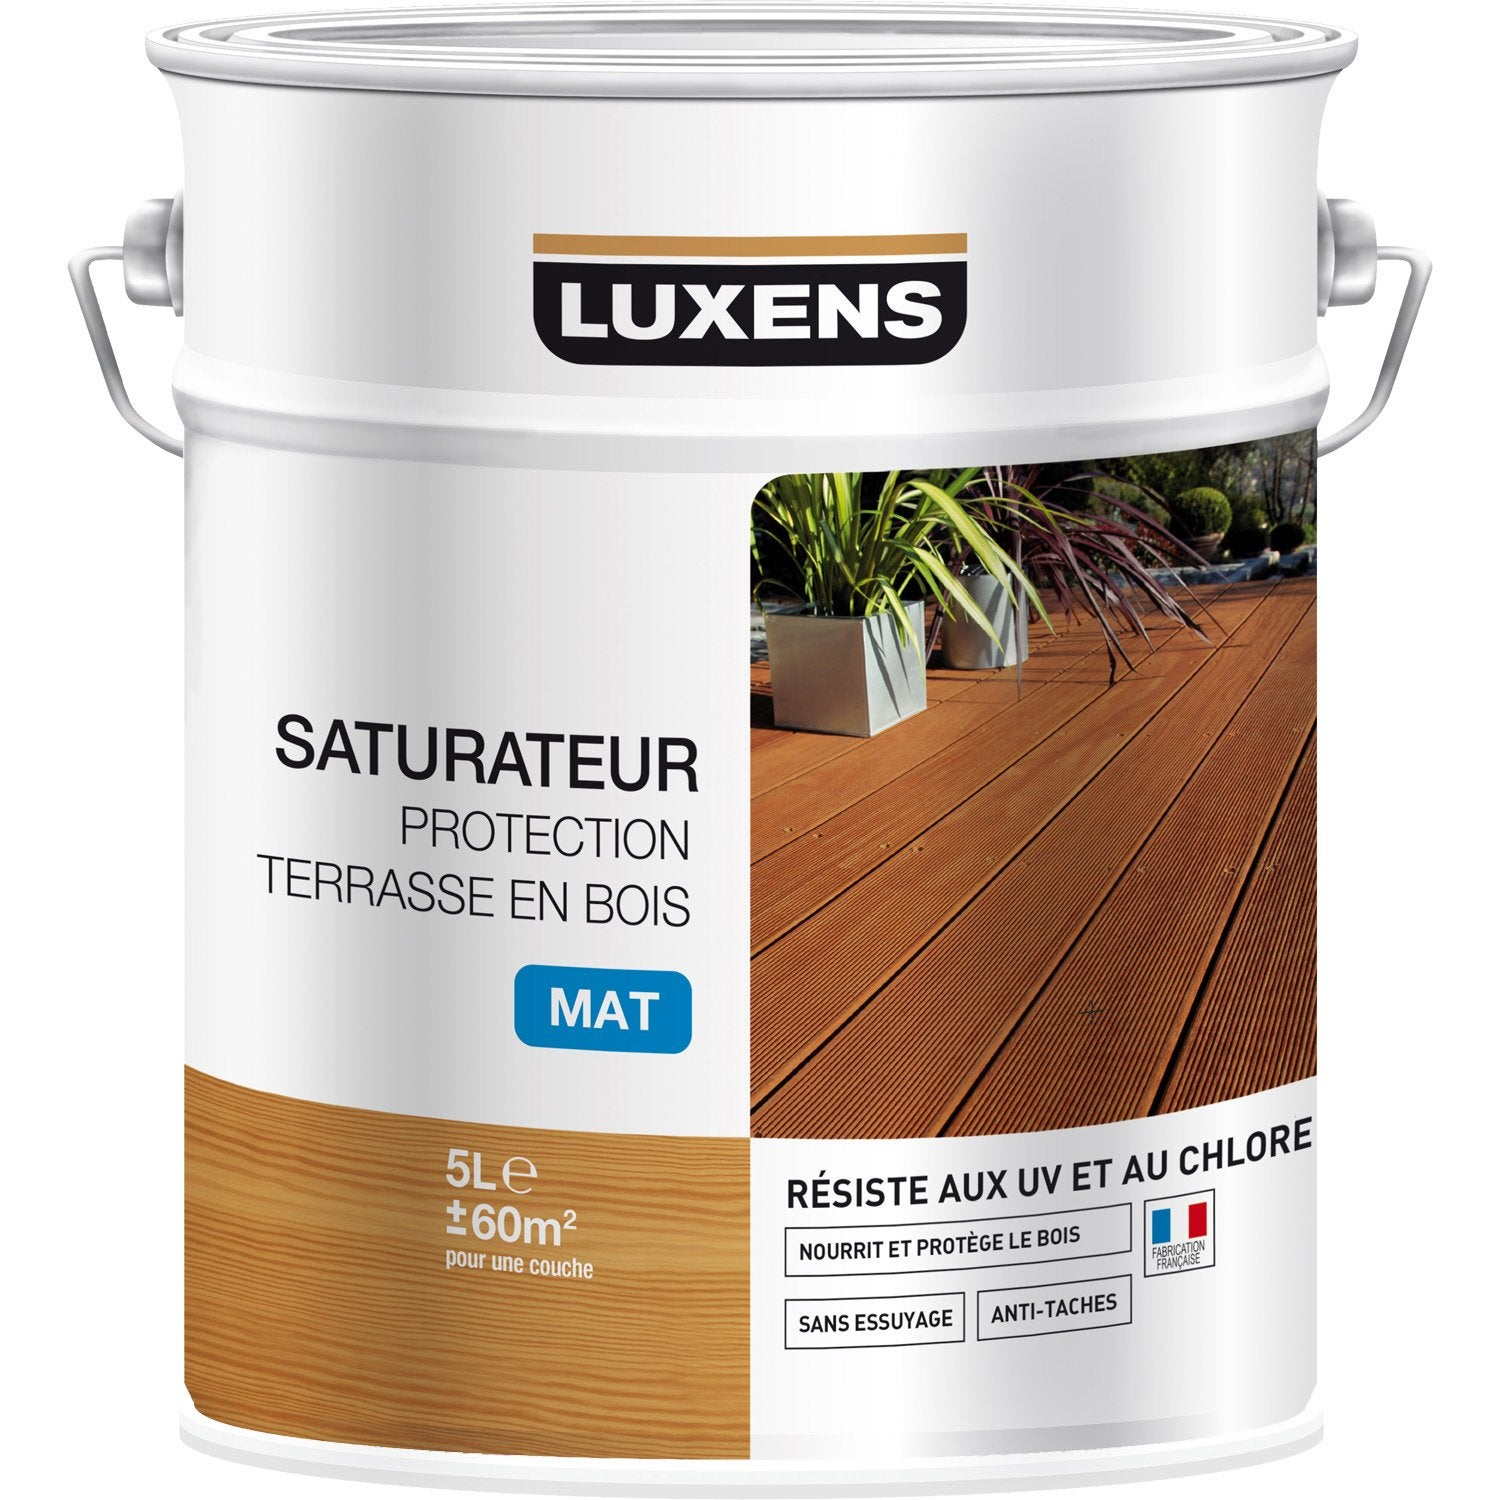 Saturateur LUXENS Protection terrasse bois 5 l, naturel Leroy Merlin # Saturateur Bois Leroy Merlin